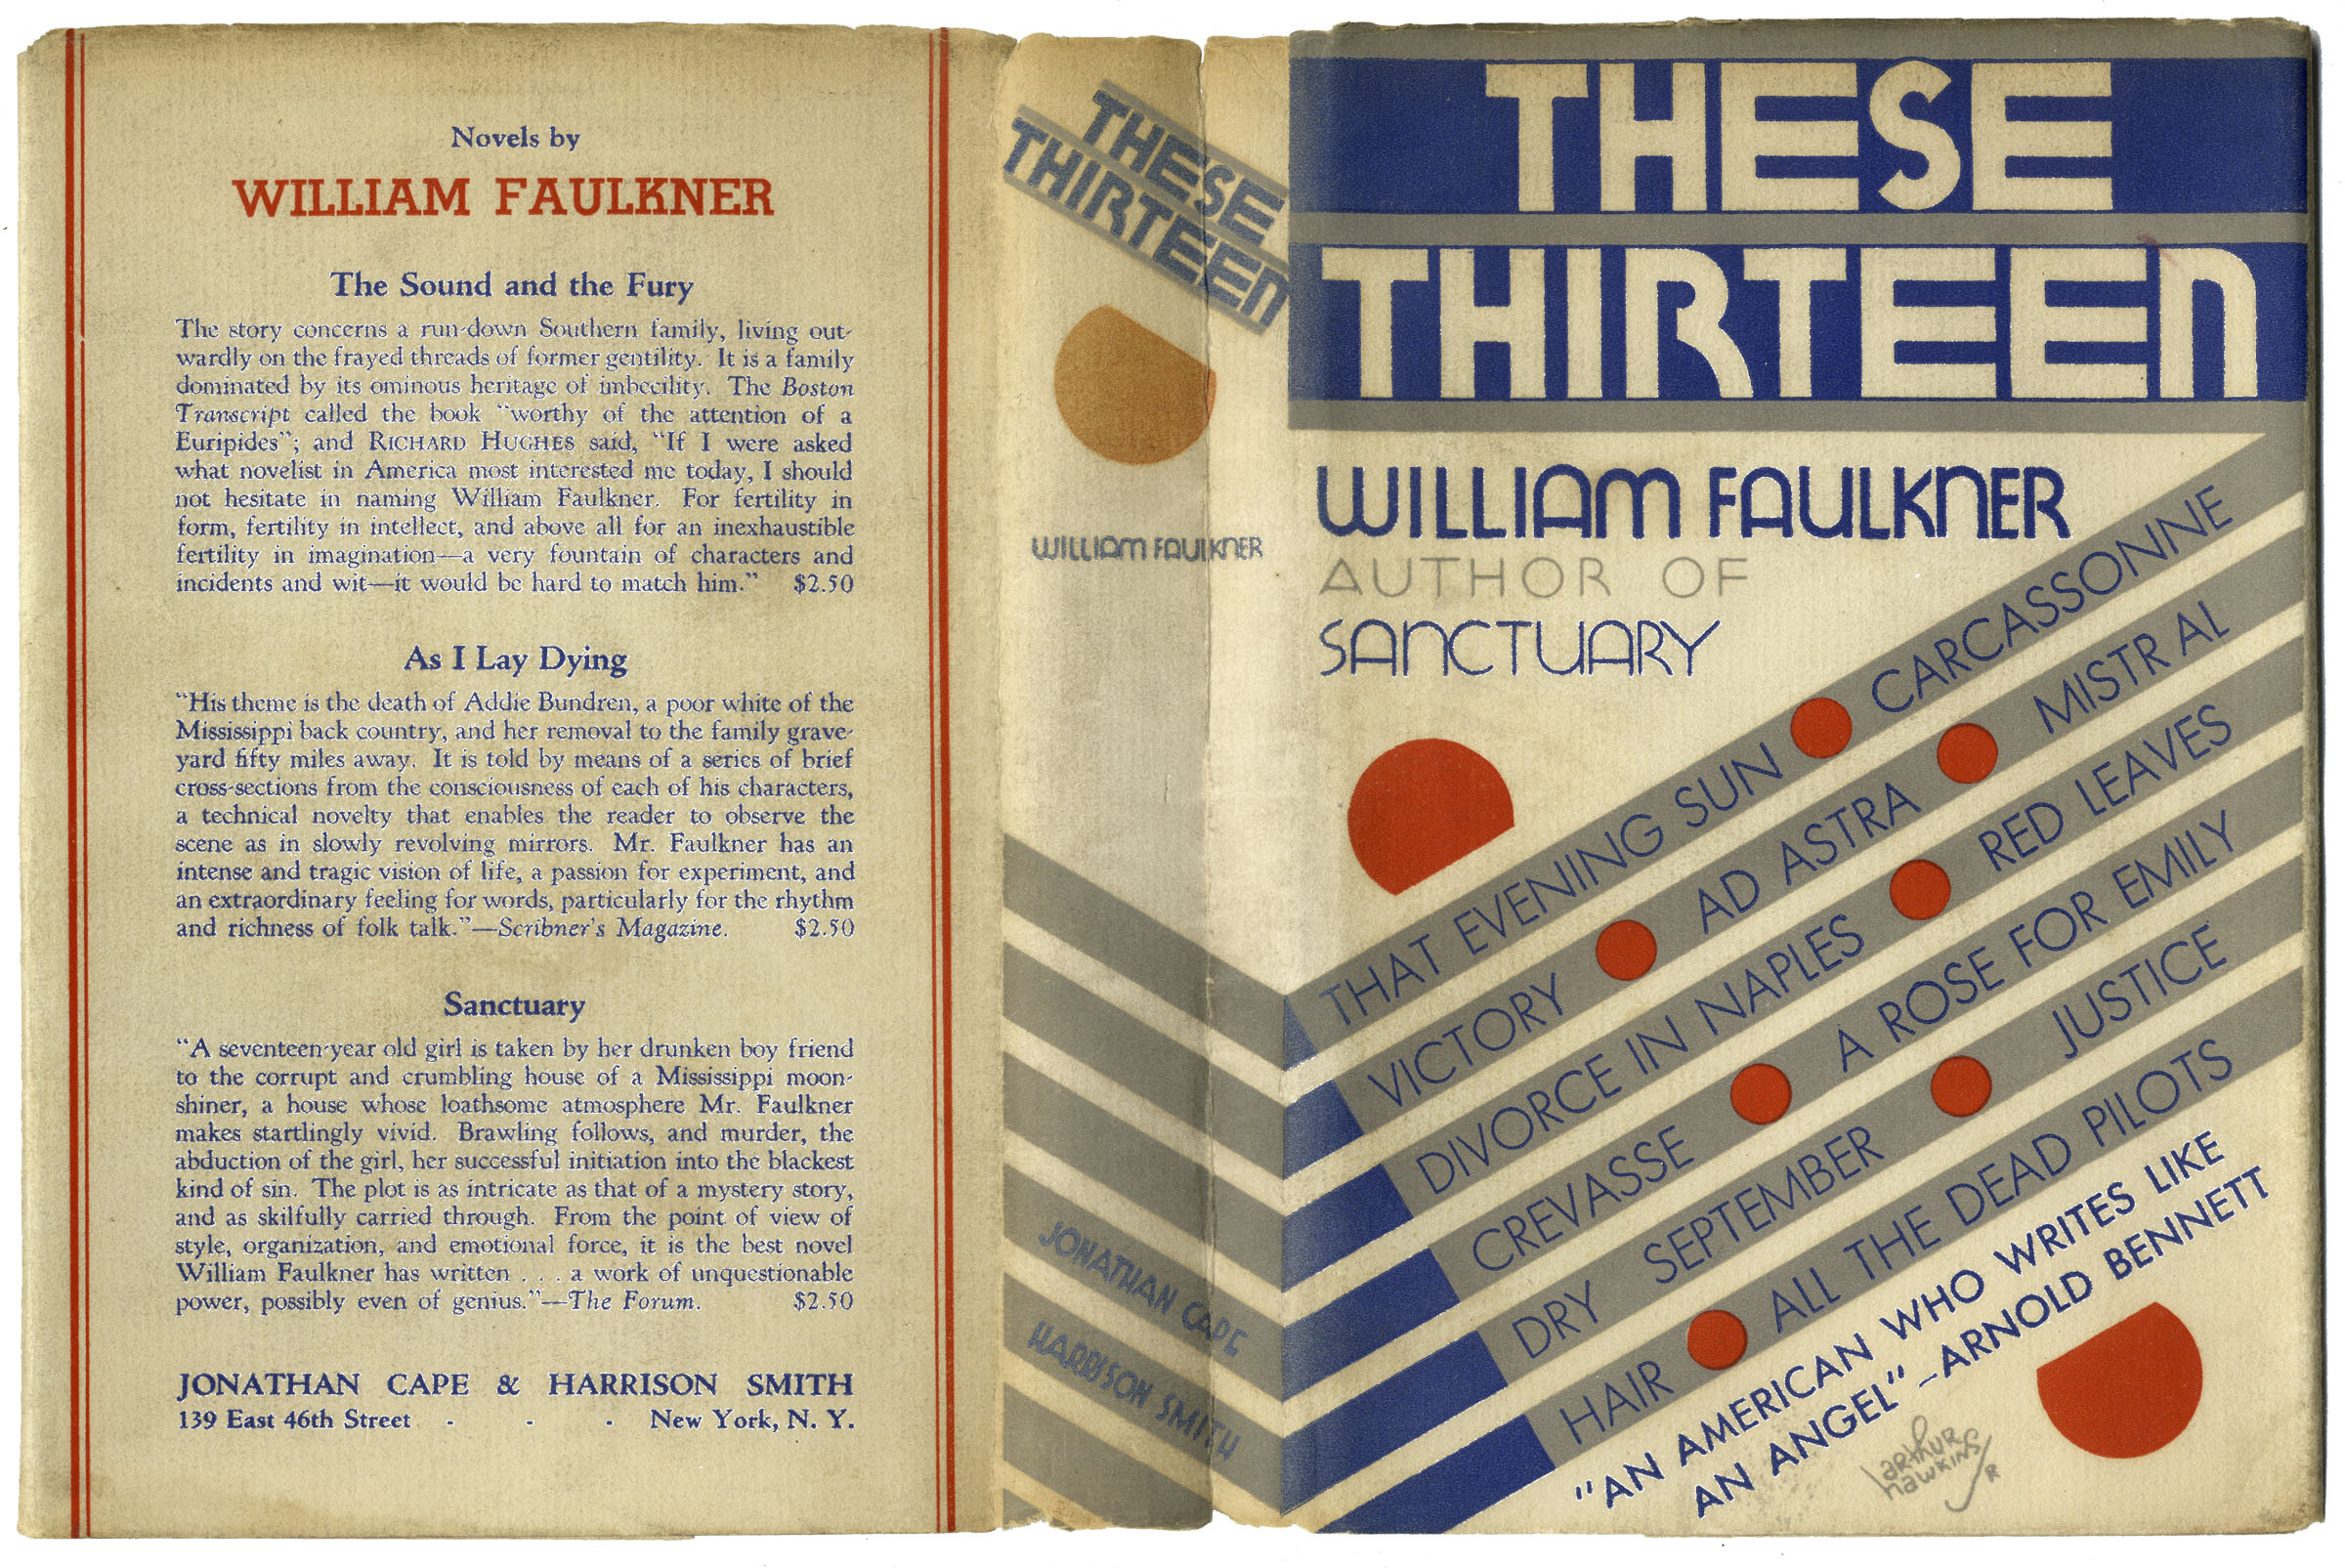 a review of william faulkners the south and the fury William faulkner analysis particularly the sound and the fury for a review of this work see magill's literary annual review mchaney, thomas william.